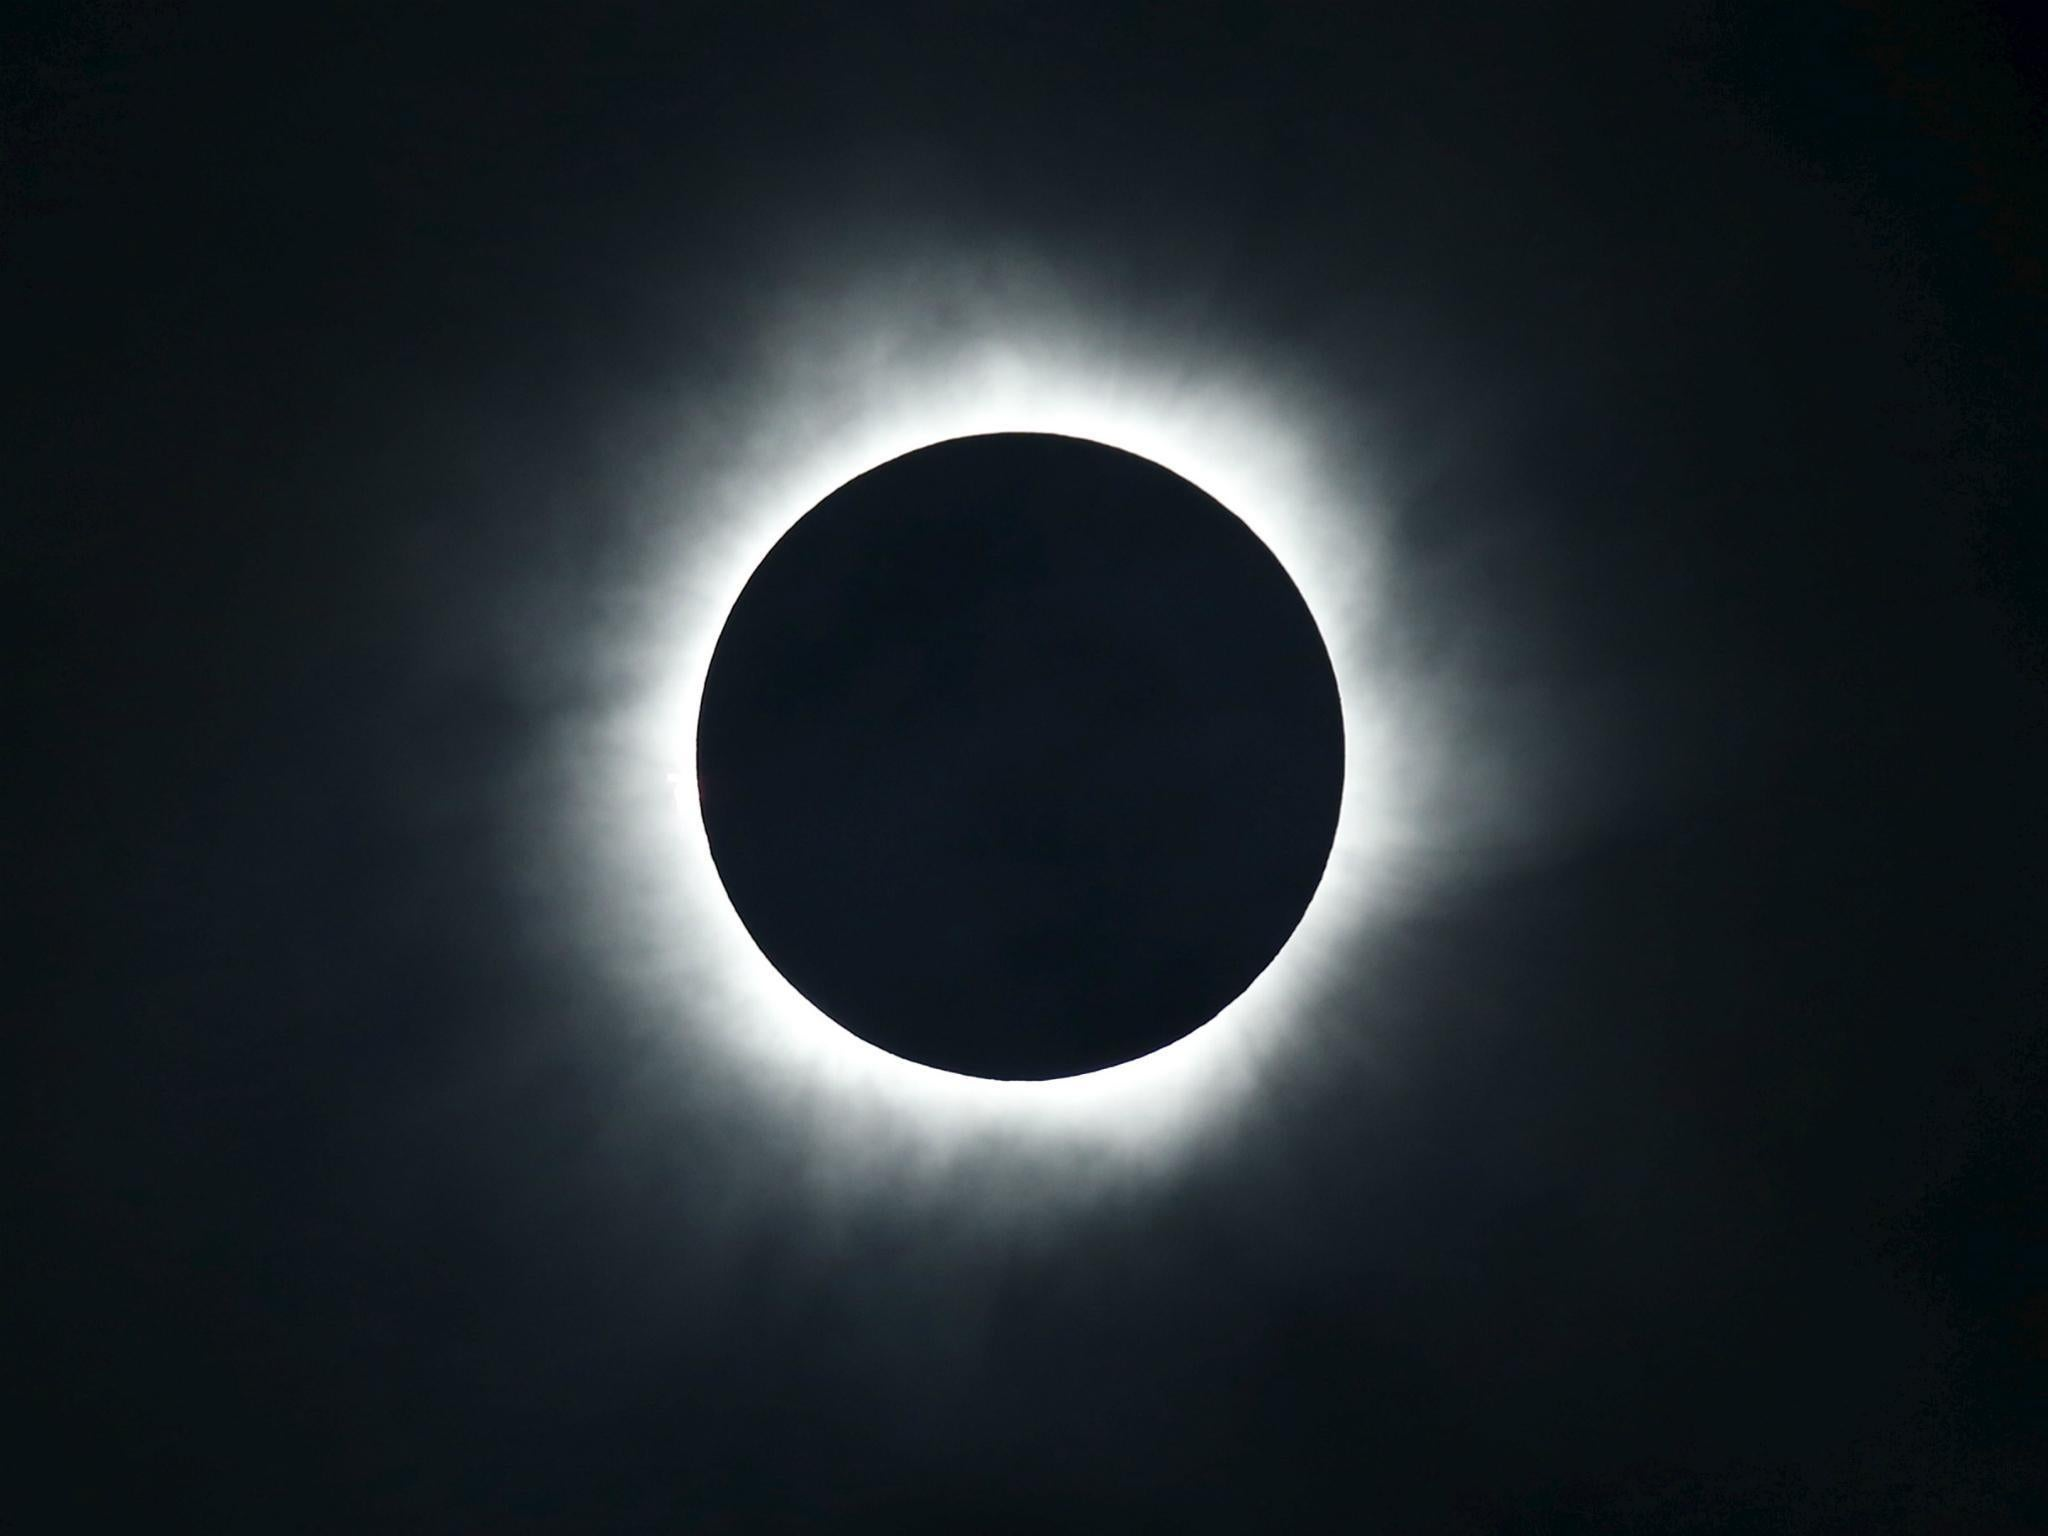 Total Solar Eclipse Sun To Disappear Behind Moon And Leave - 17 incredible photos of the 2017 solar eclipse